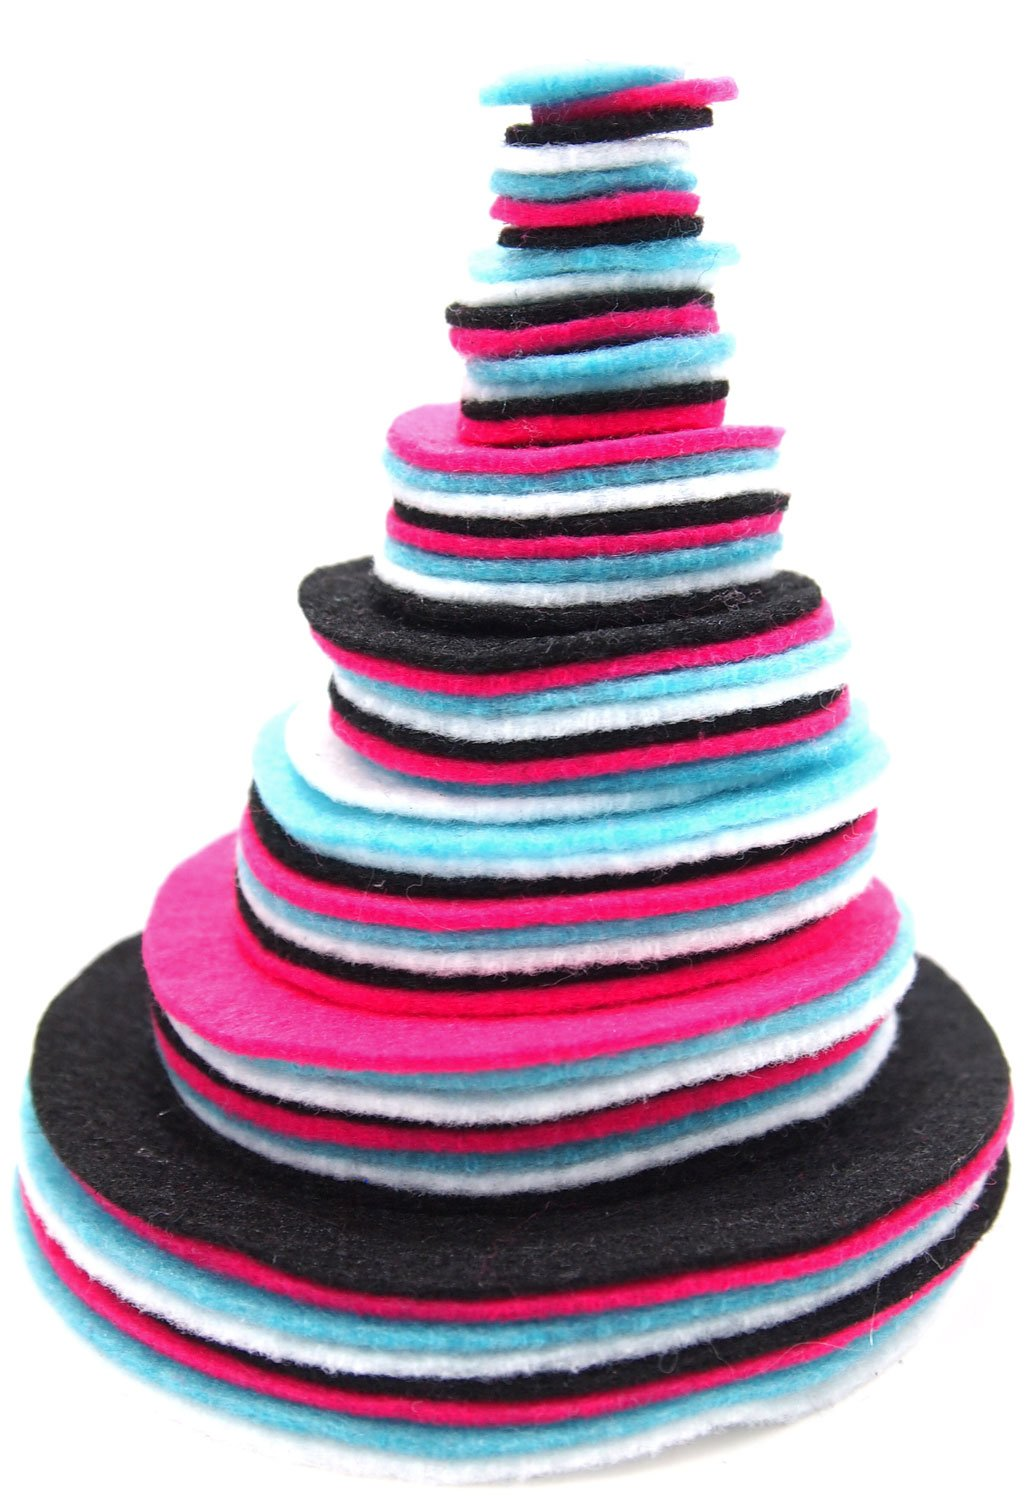 Playfully Ever After 3/4 to 4 Inch Assorted Sizes Felt Circles Color Combo Pack with Black, Pink, Turquoise Blue, White (56pc)